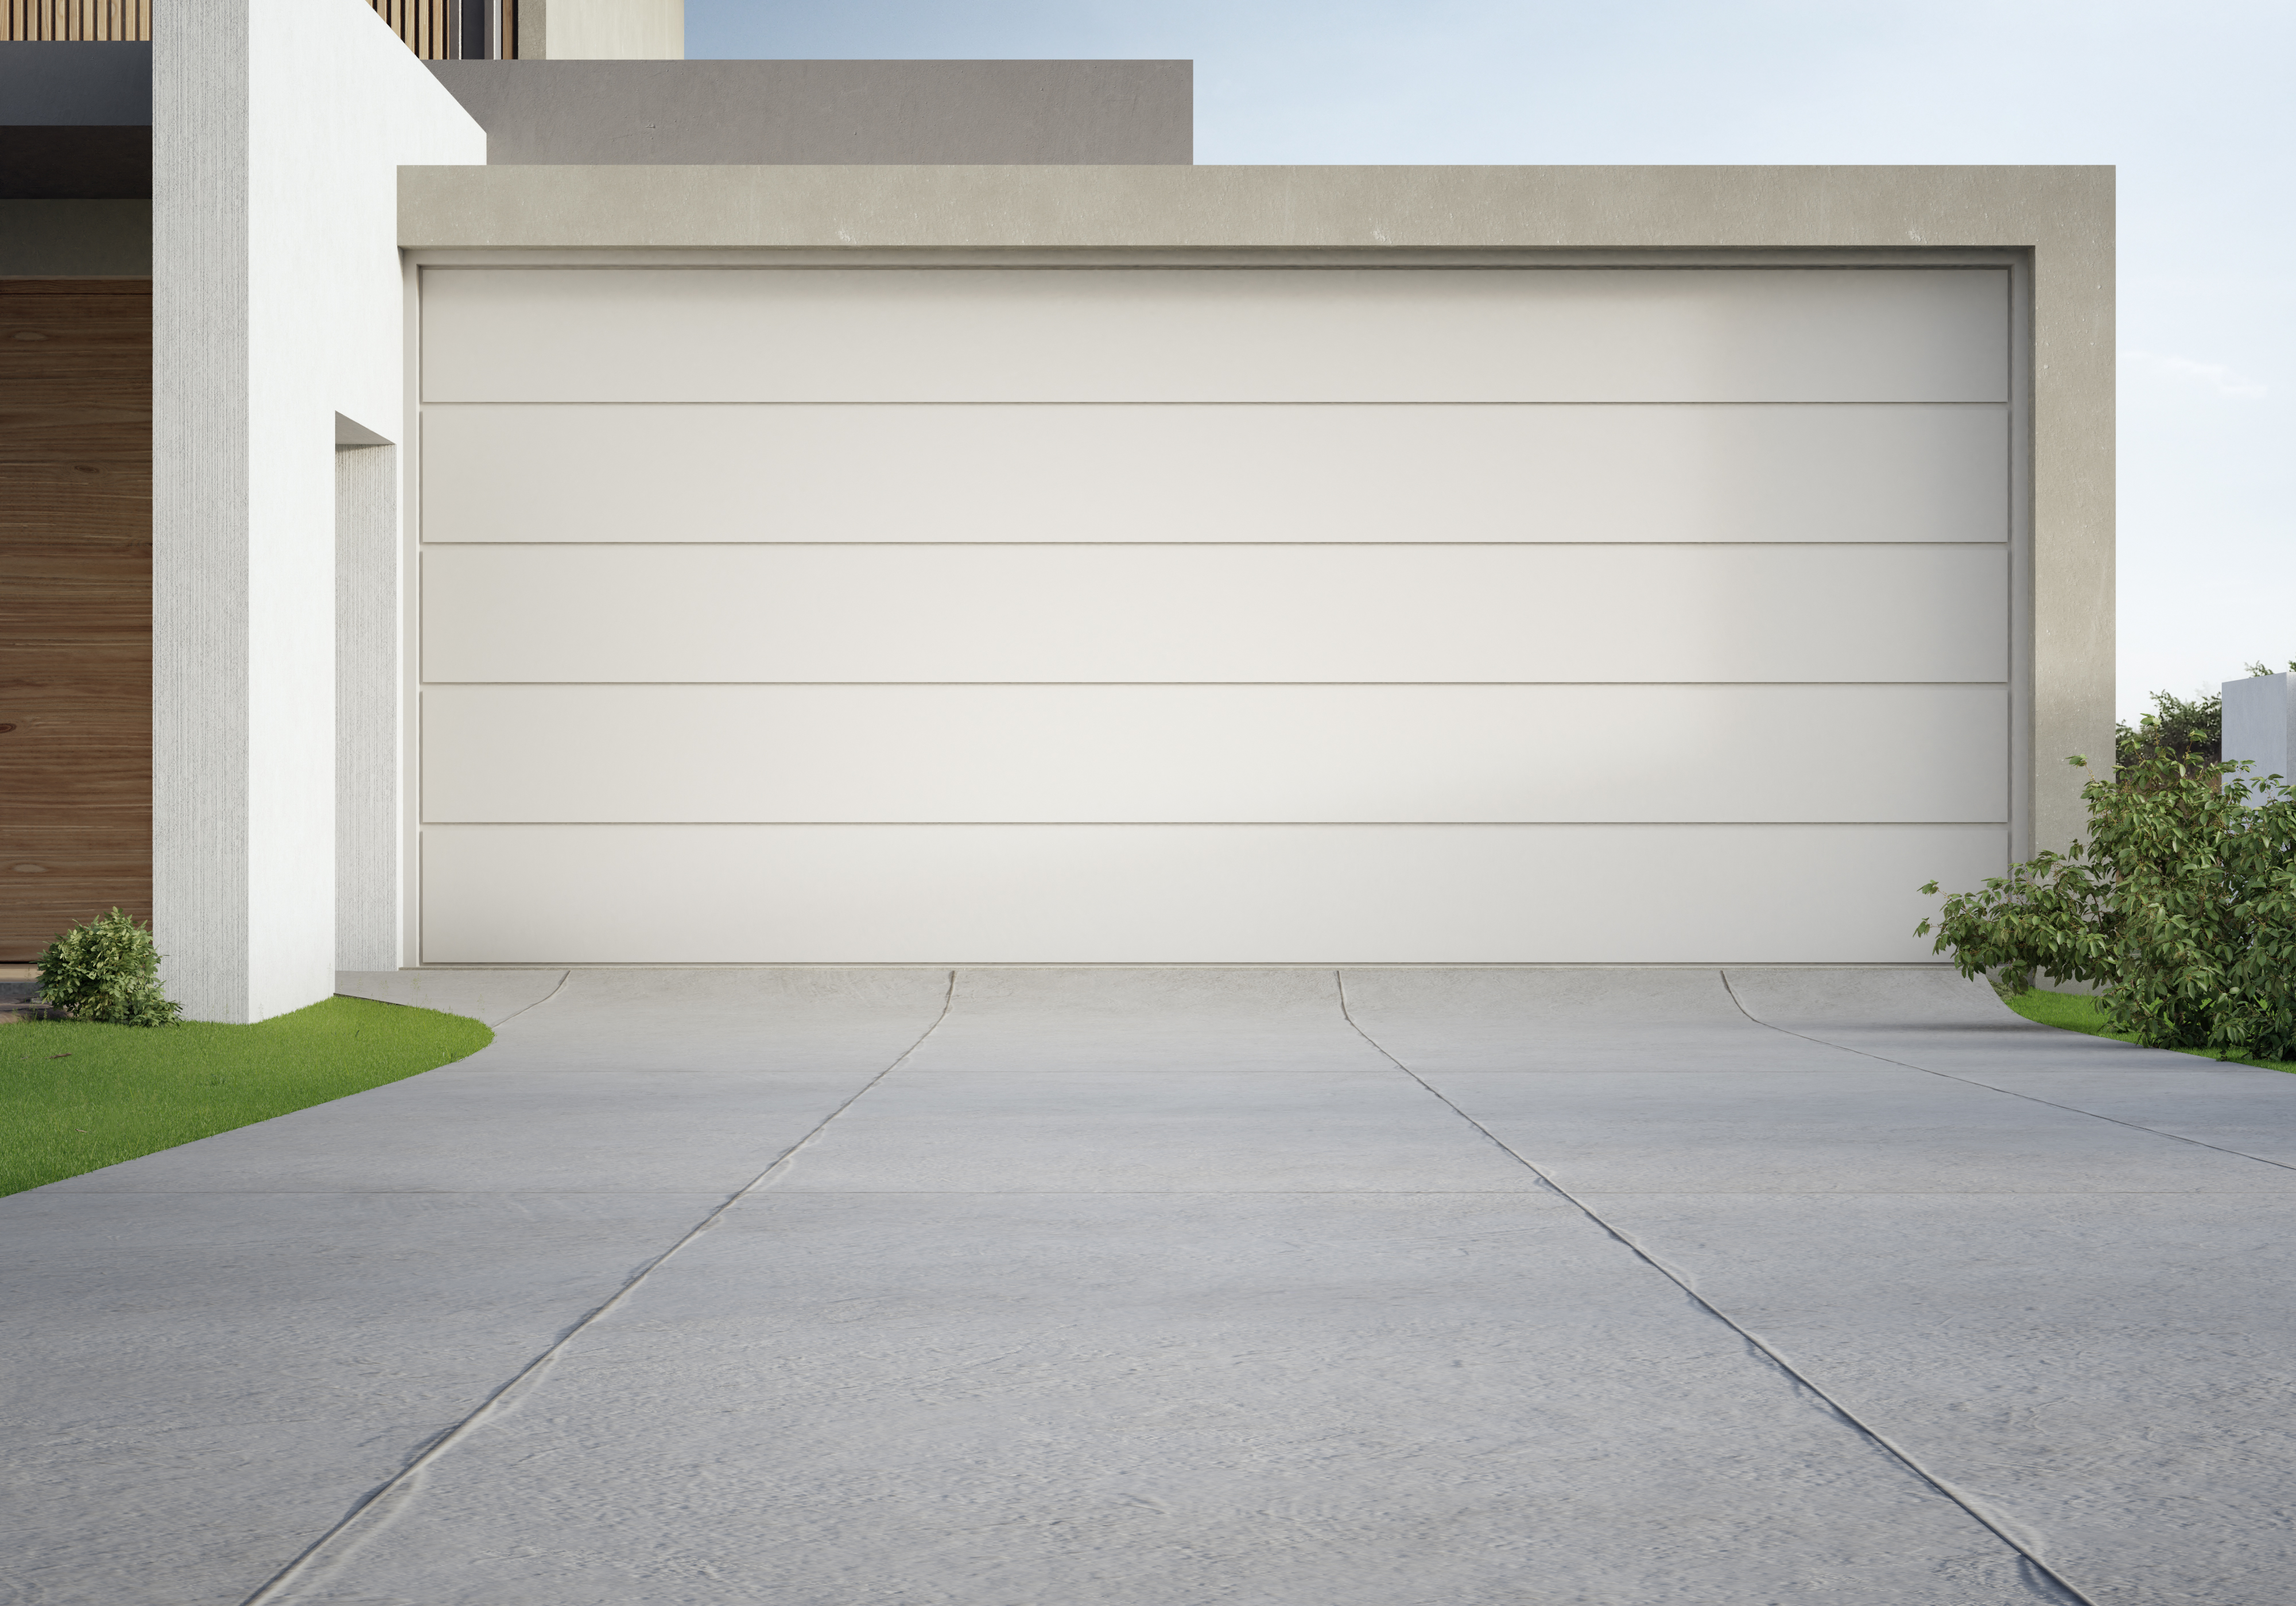 Modern house and big garage with concrete driveway. 3d illustration of residential building exterior.